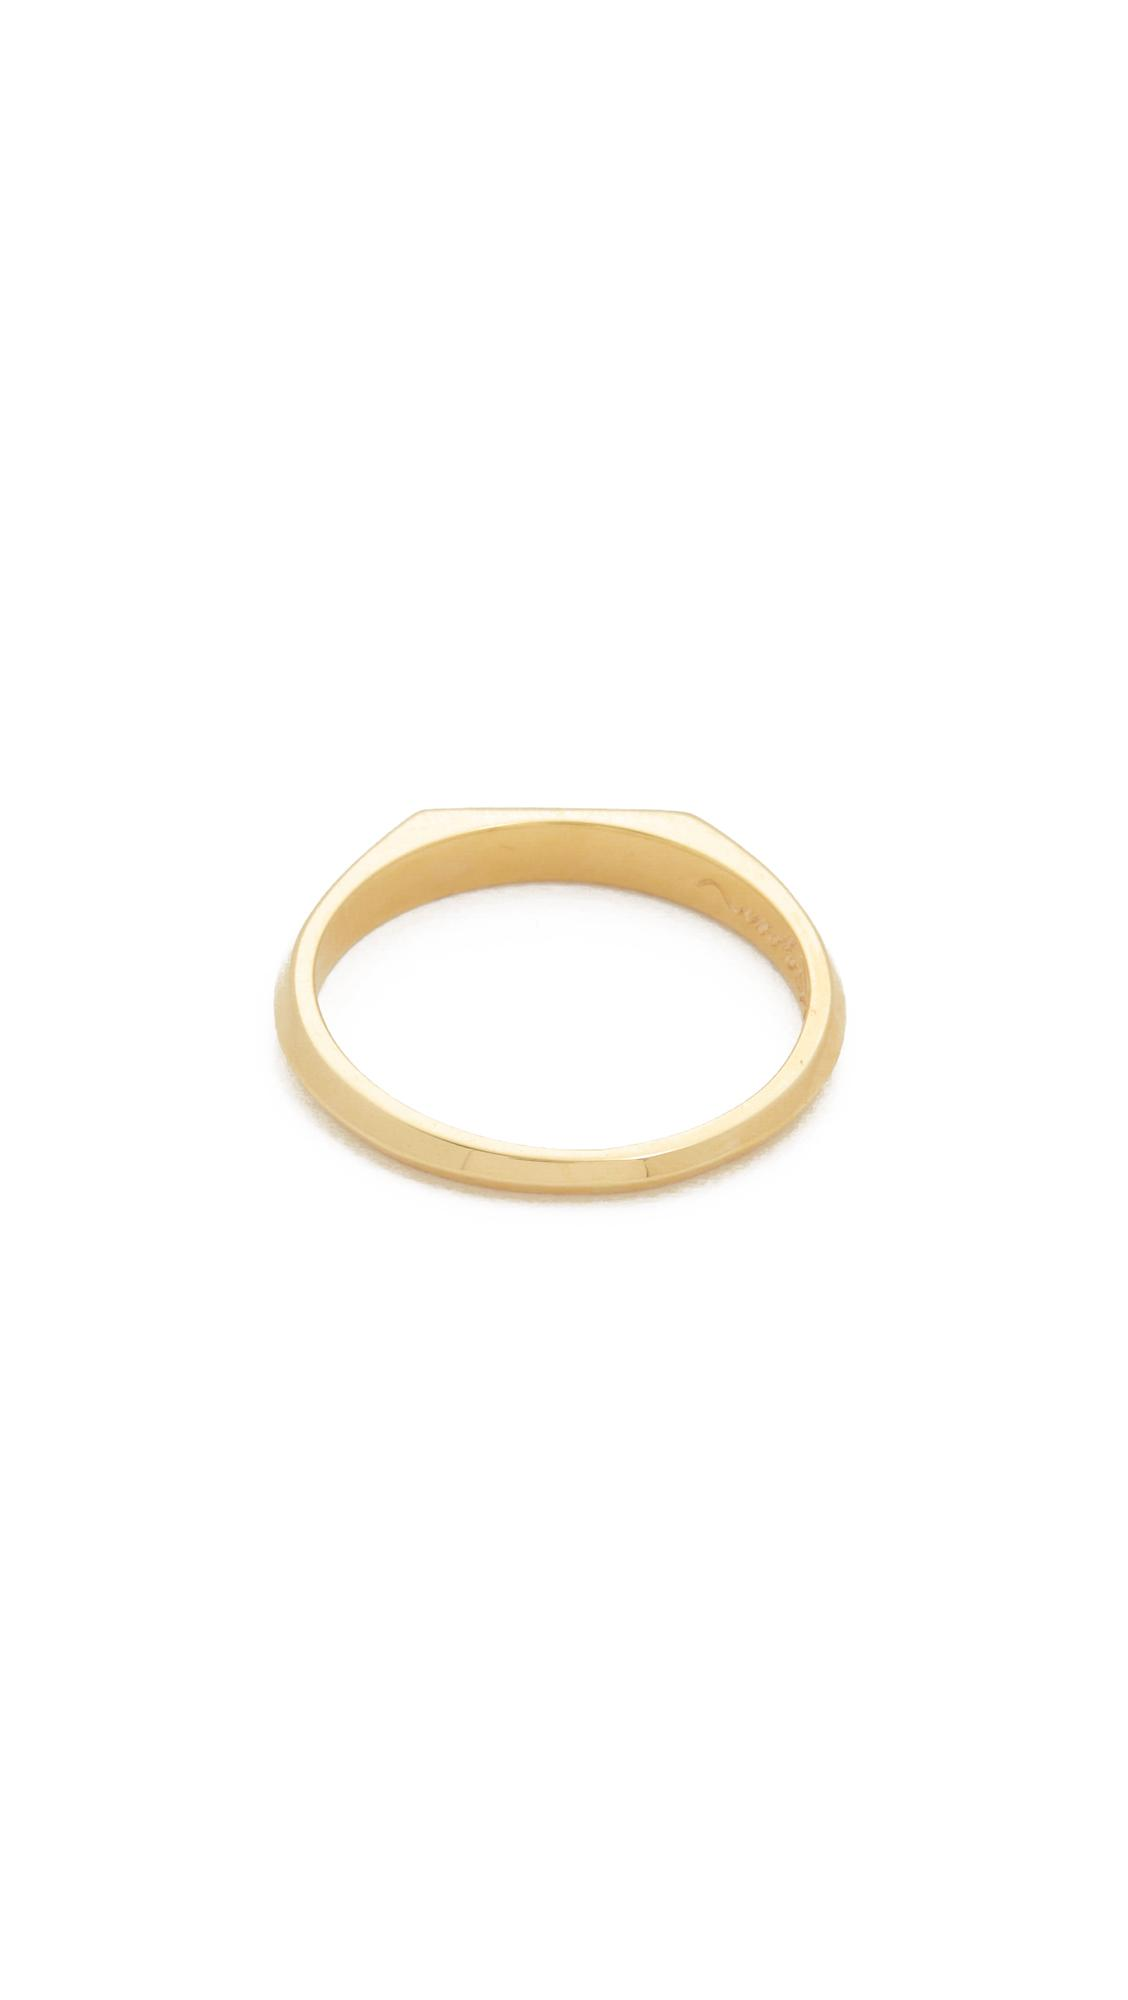 Nora Kogan Mrs Signet Ring in White (Metallic)